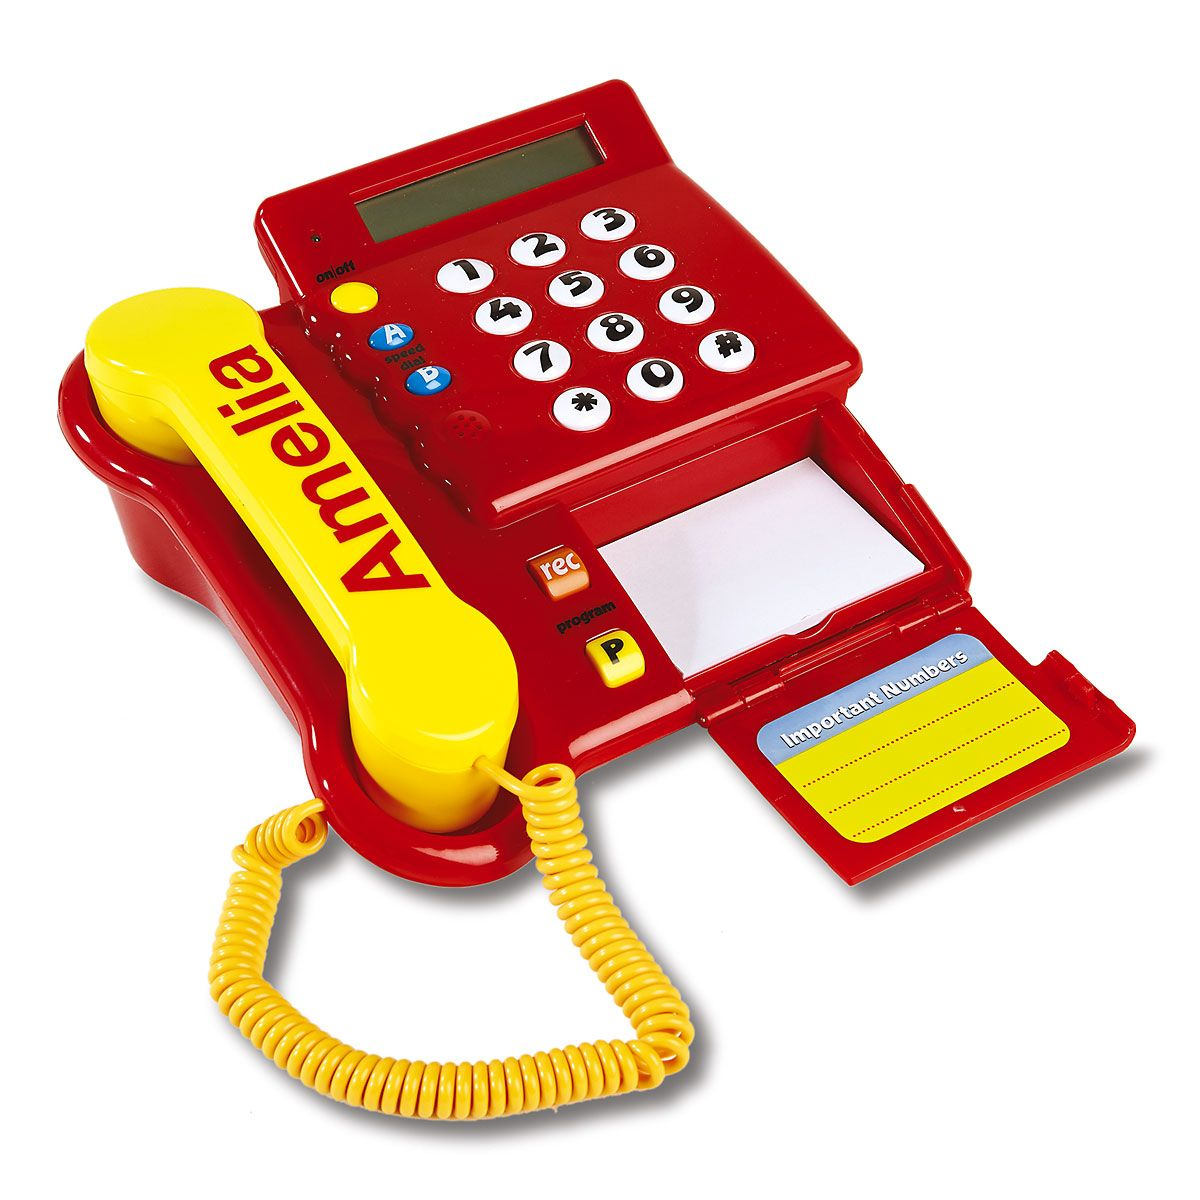 Personalized Teaching Telephone